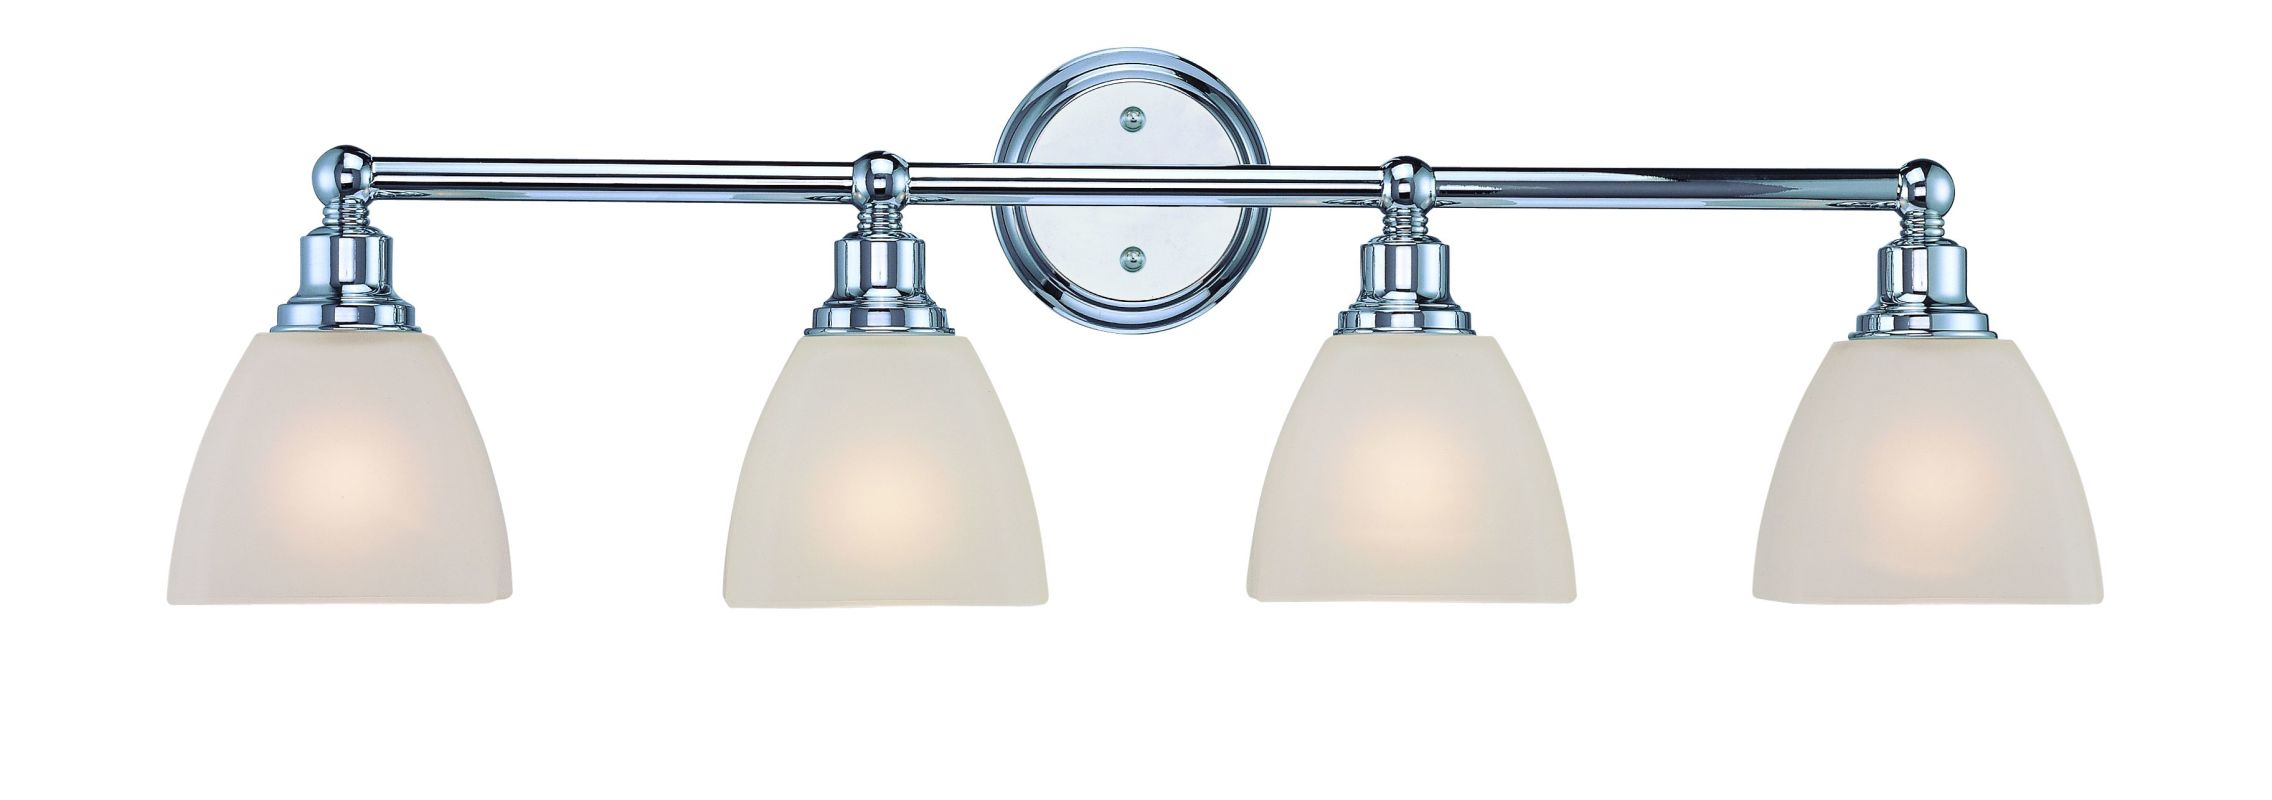 Jeremiah Lighting 26604 Bradley 4 Light Bathroom Vanity Light - 32.65